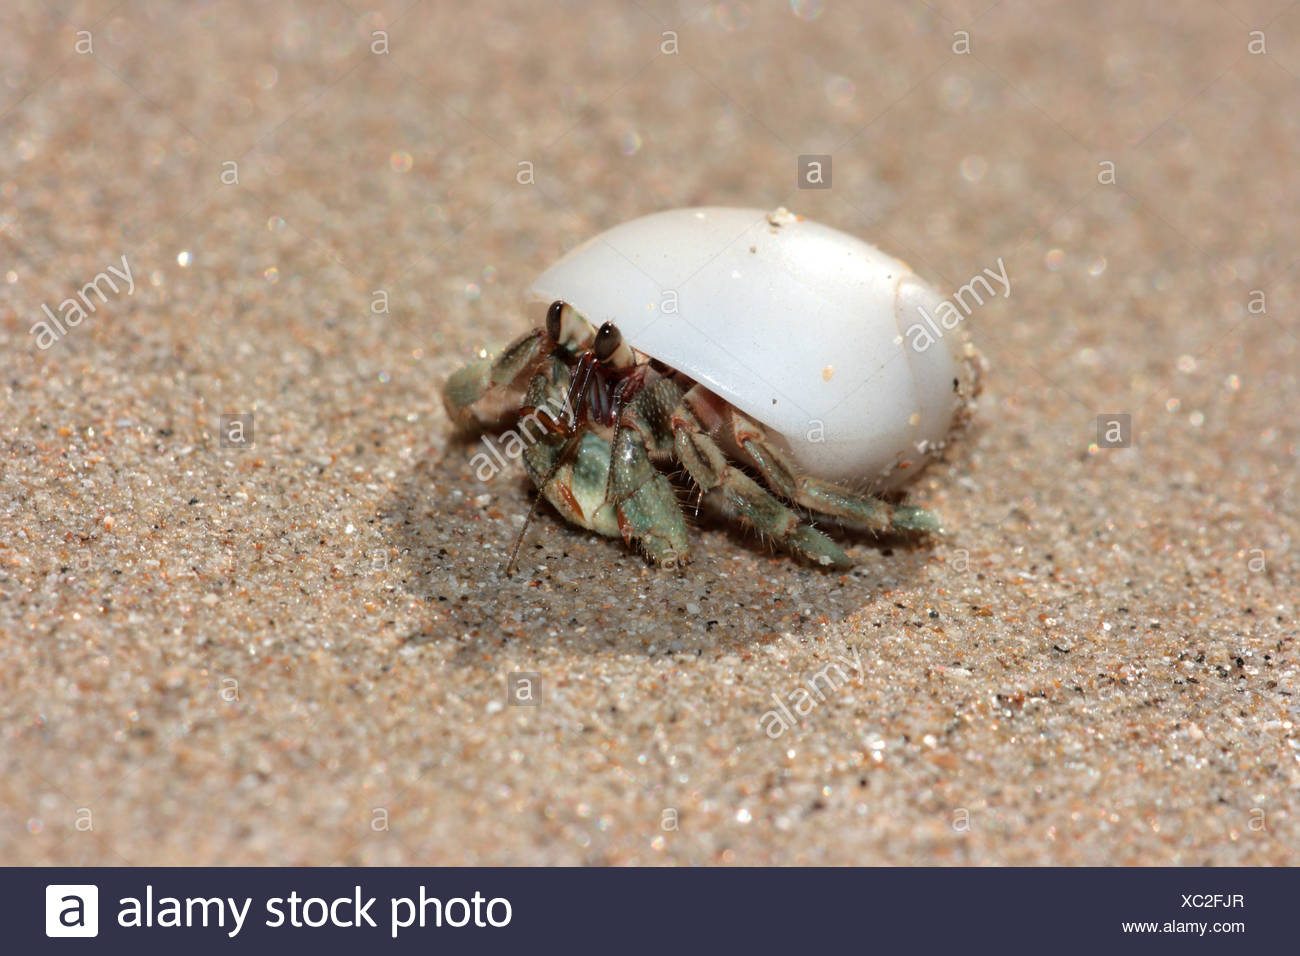 left-handed hermit crabs (Diogenidae), in a white snail shell, Thailand, Khao lak NP - Stock Image